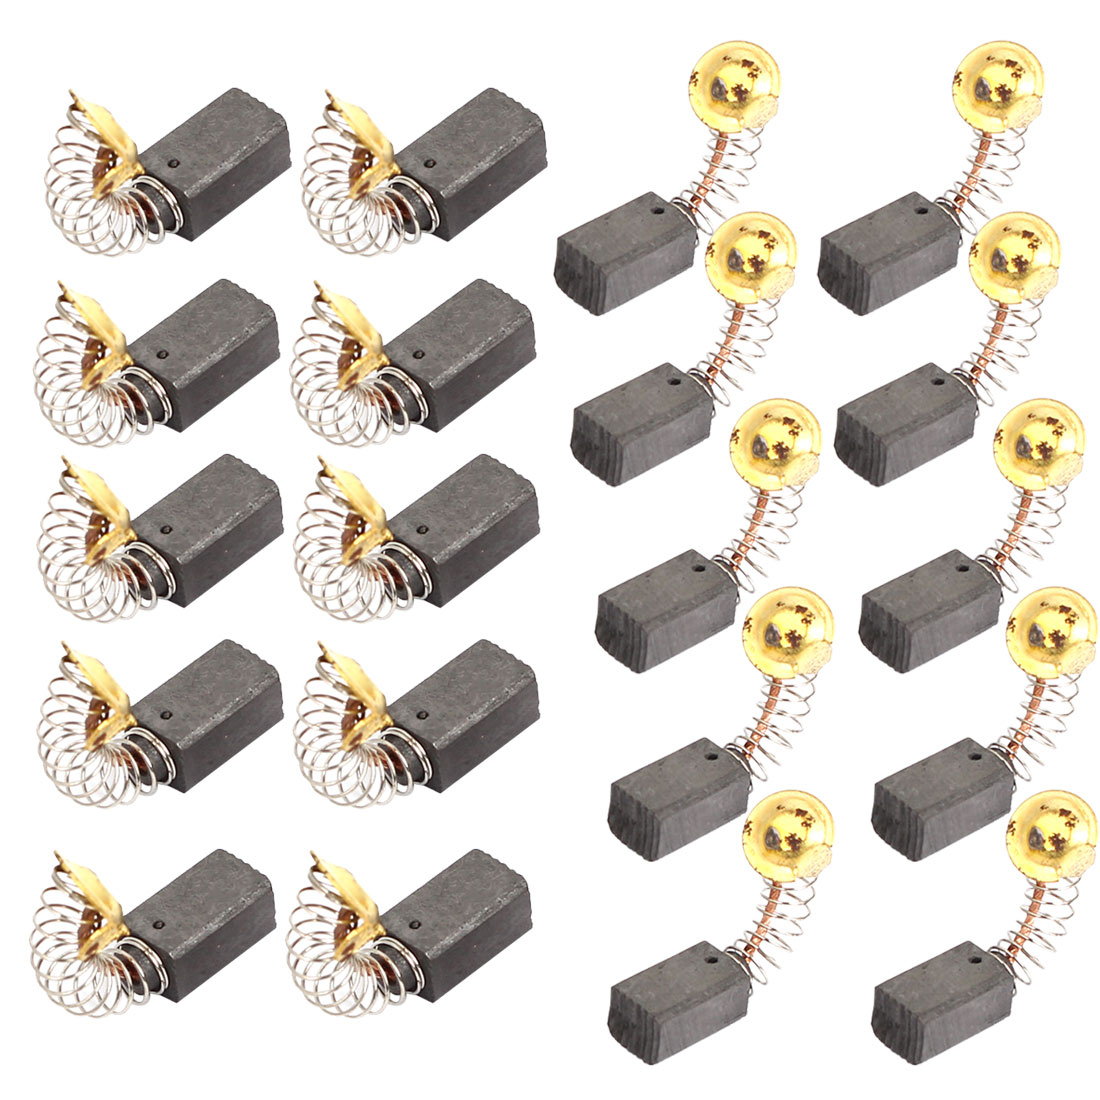 10 Pairs Electric Drill Motor Rotary Power Tool Carbon Brush 12.5mm x 7mm x 6mm